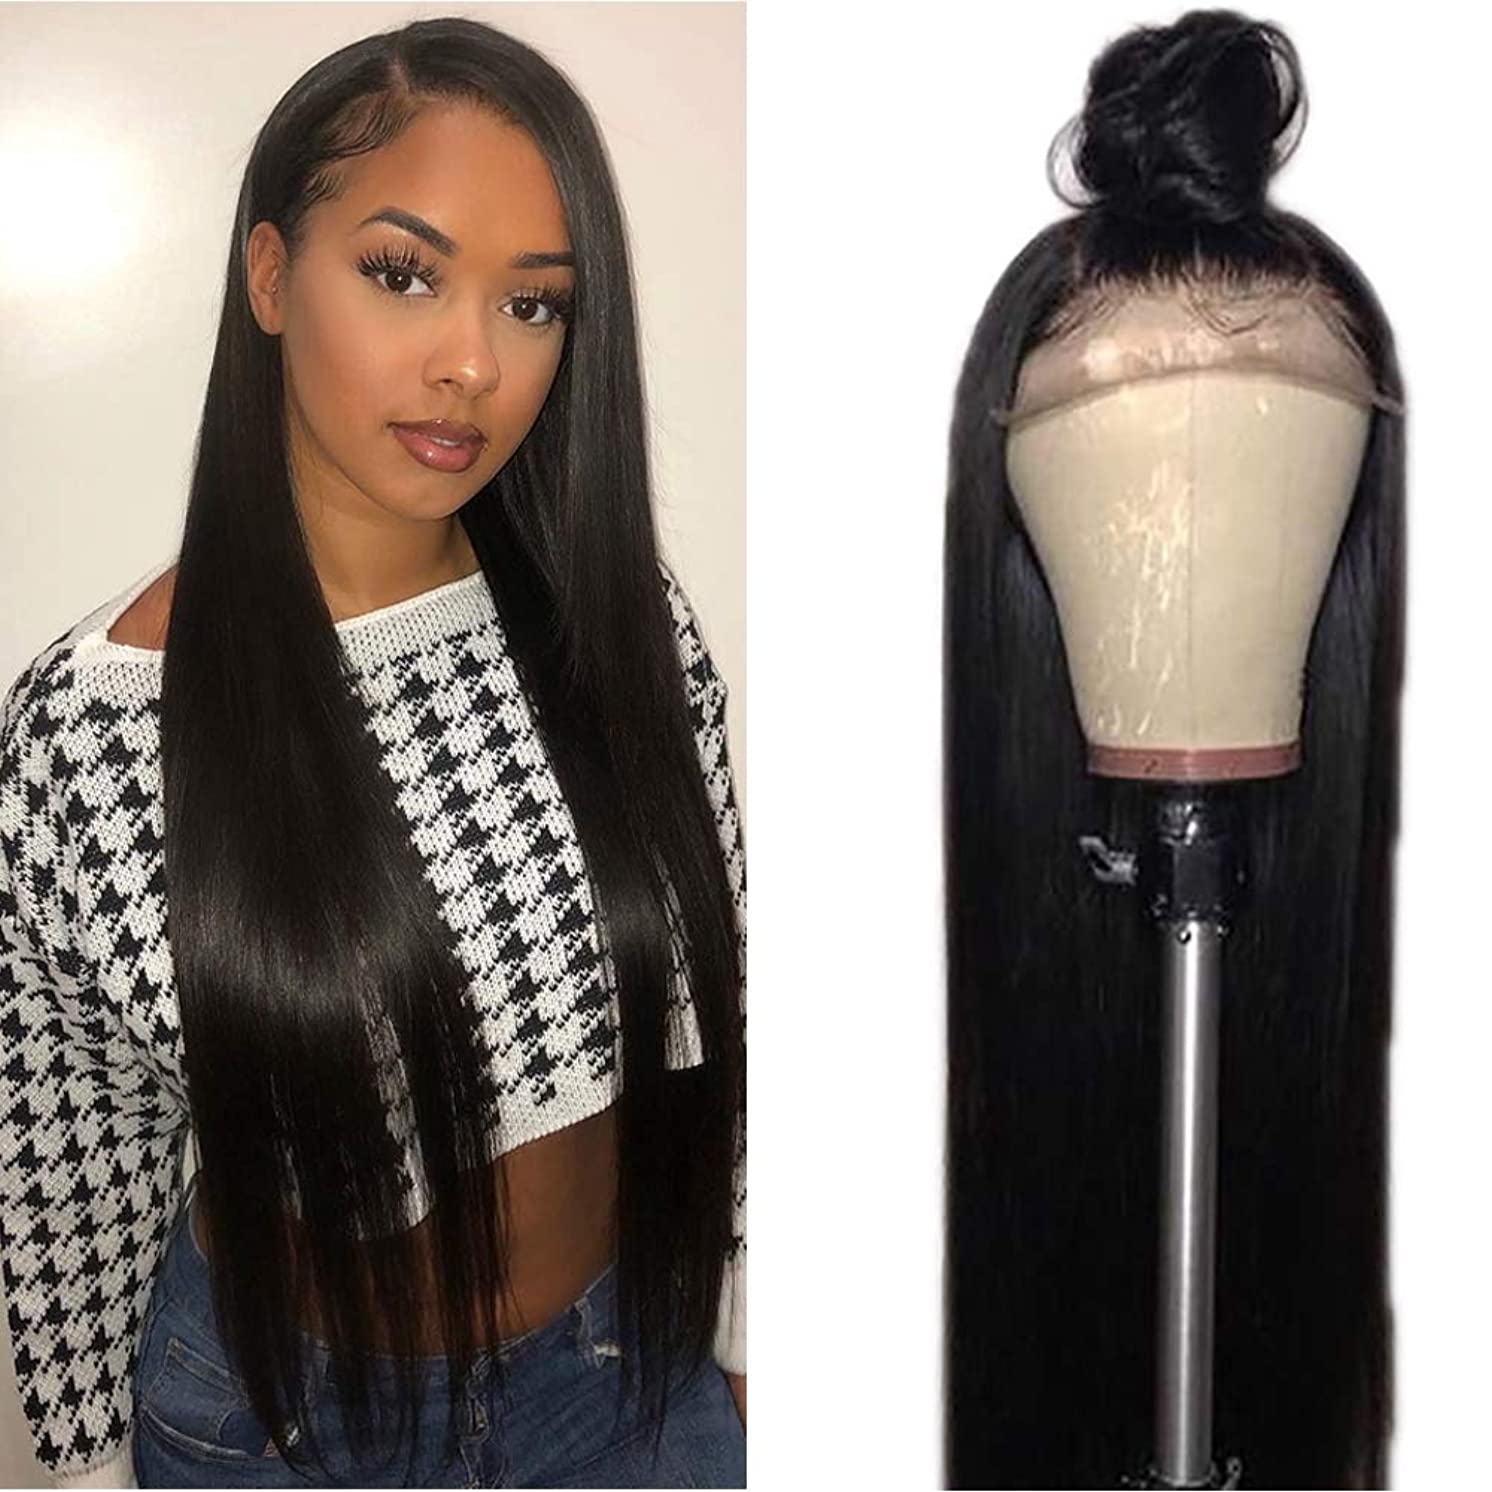 Tuneful 150% Density Human Hair Glueless Lace Front Wigs with Baby Hair Brazilian Straight Human Hair wigs for Black Women Pre Plucked Lace Wigs Natural Hairline 26 inch